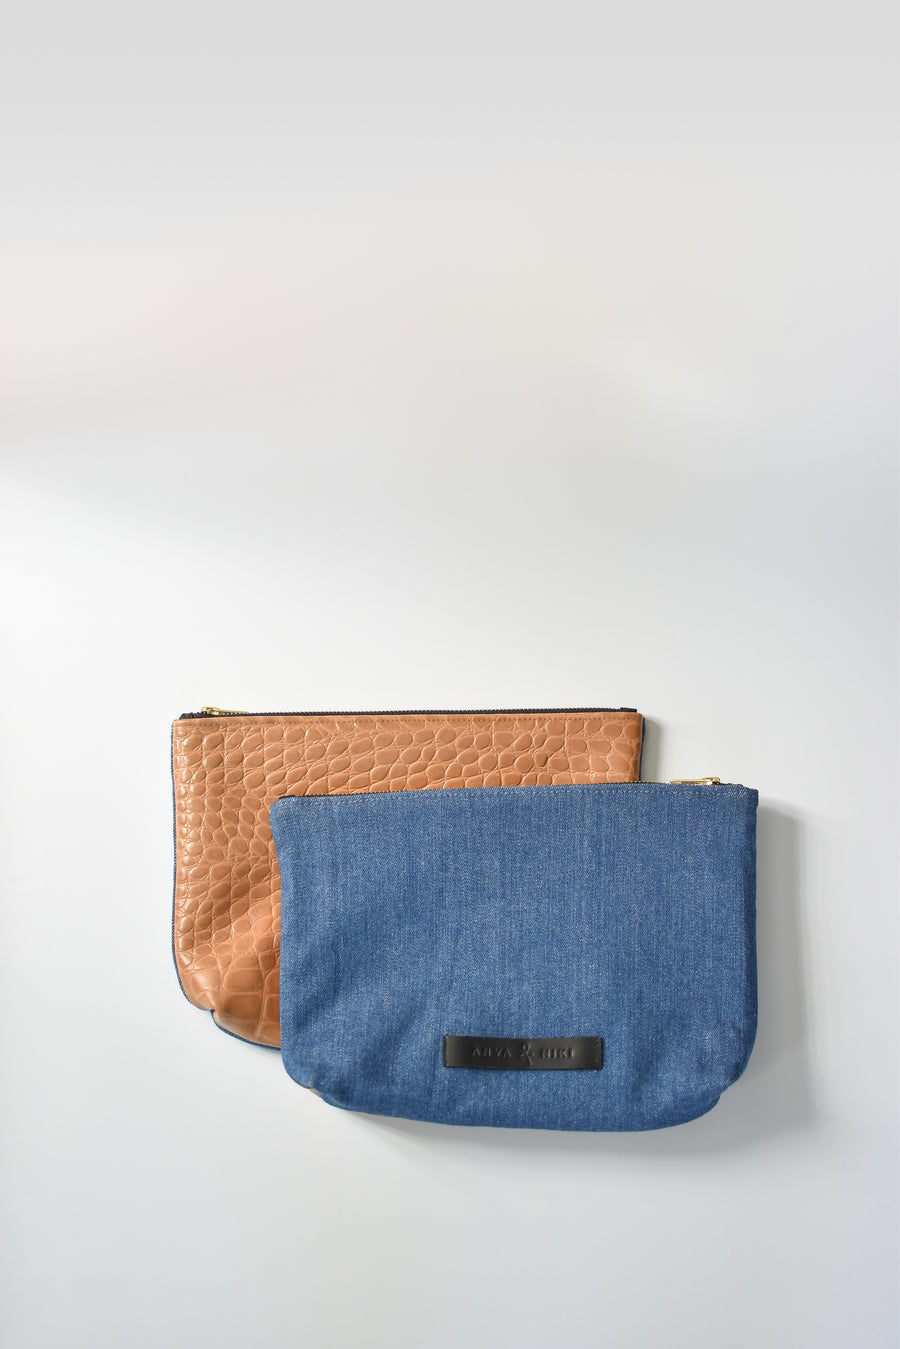 Medium wash denim and caramel colored embossed leather skin medium pouch with brass zipper and leather logo label.